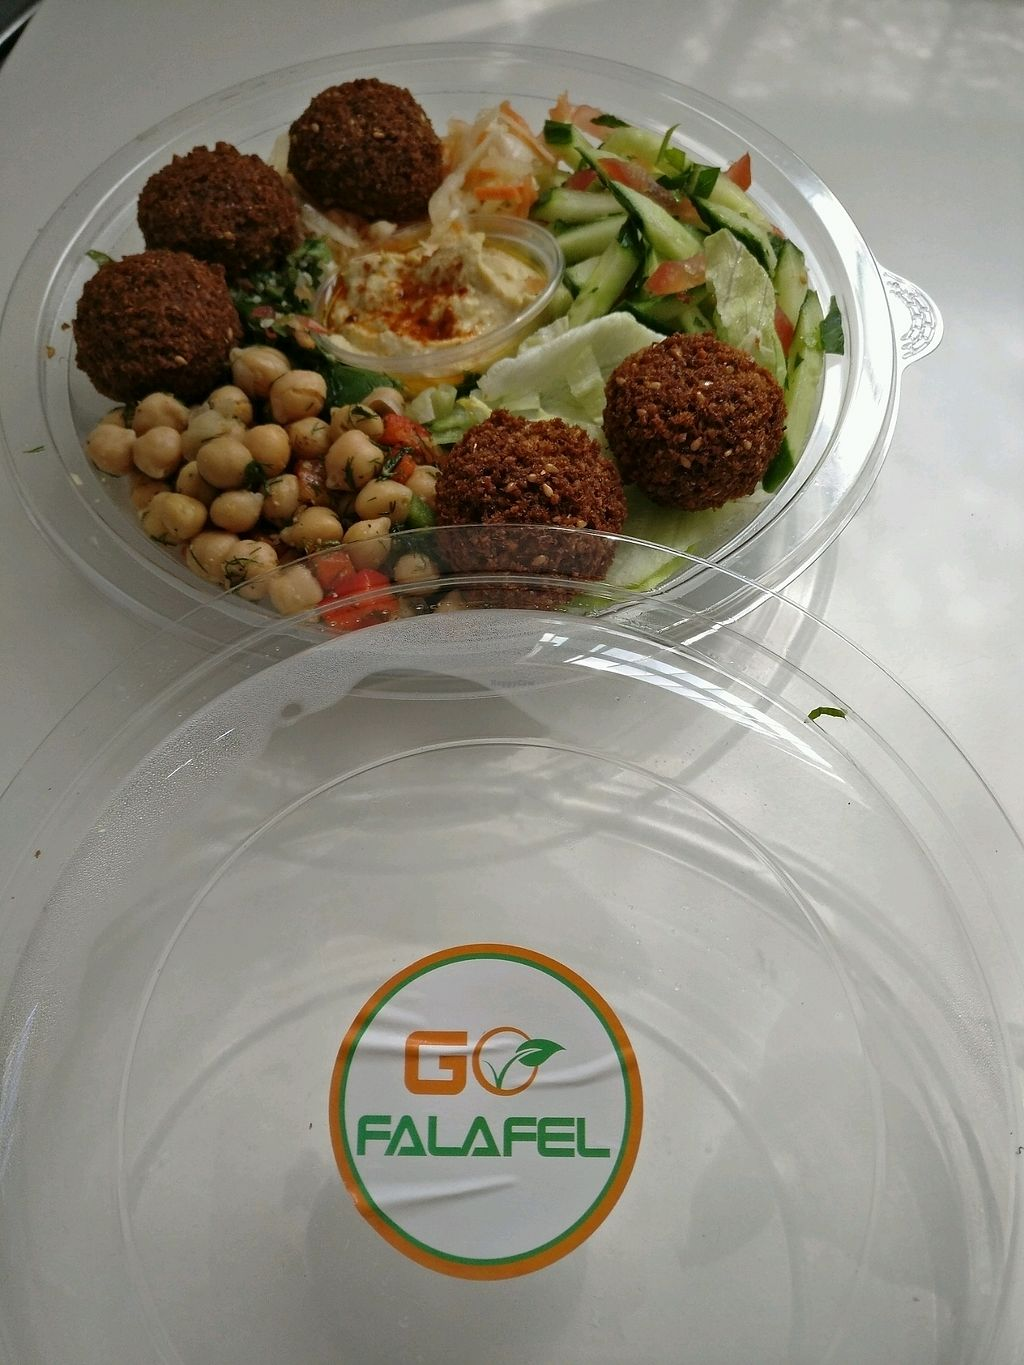 """Photo of Go Falafel - Piccadilly Gardens  by <a href=""""/members/profile/Disappeared"""">Disappeared</a> <br/>Lunch bowl  <br/> July 1, 2017  - <a href='/contact/abuse/image/39503/275632'>Report</a>"""